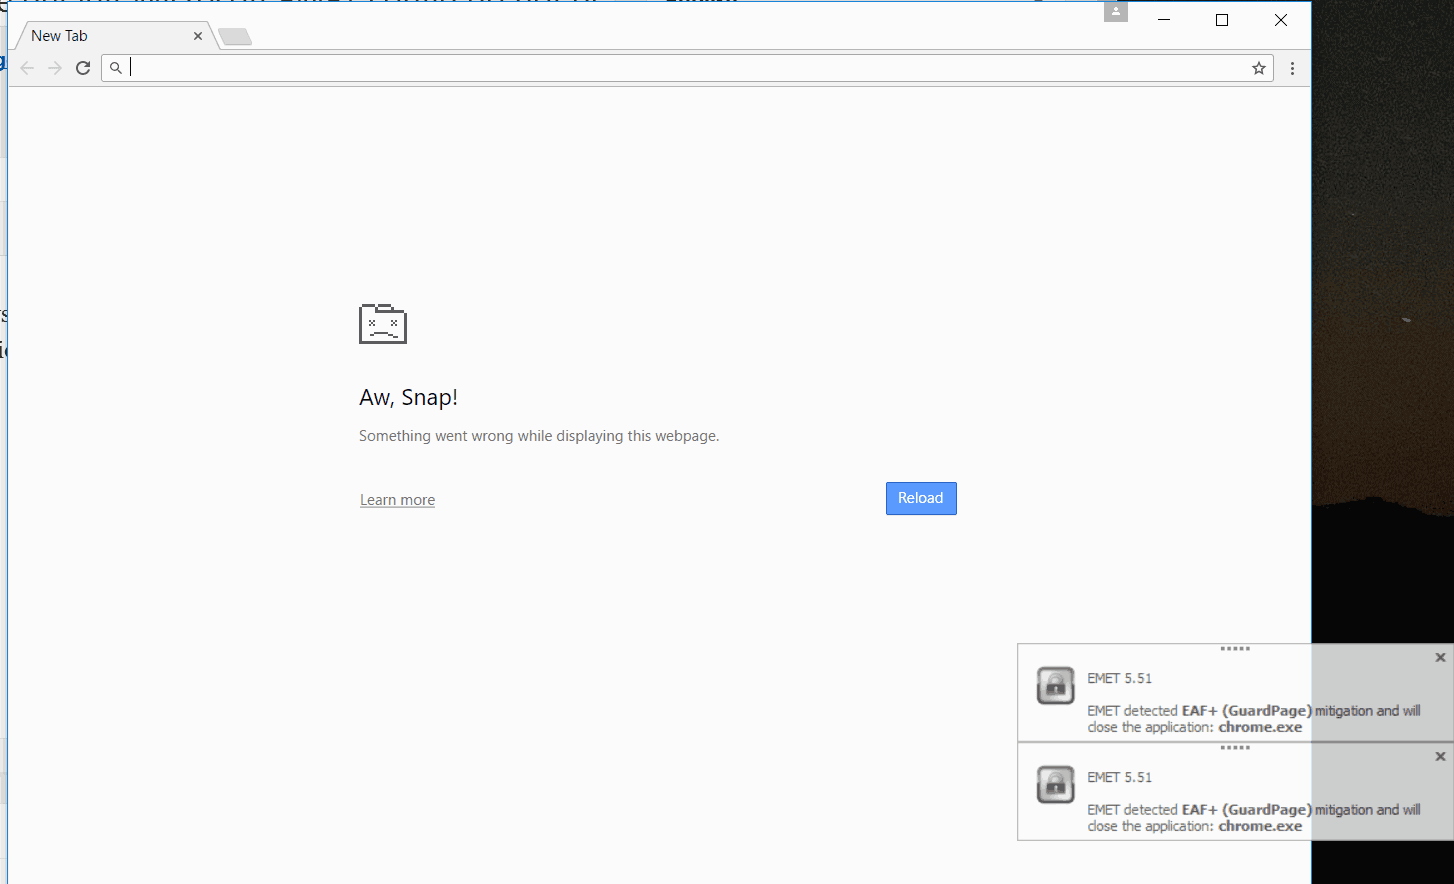 A screenshot of the EAF+ error generateted W=by the latest Google Chrome release when used with the defualt EMET config